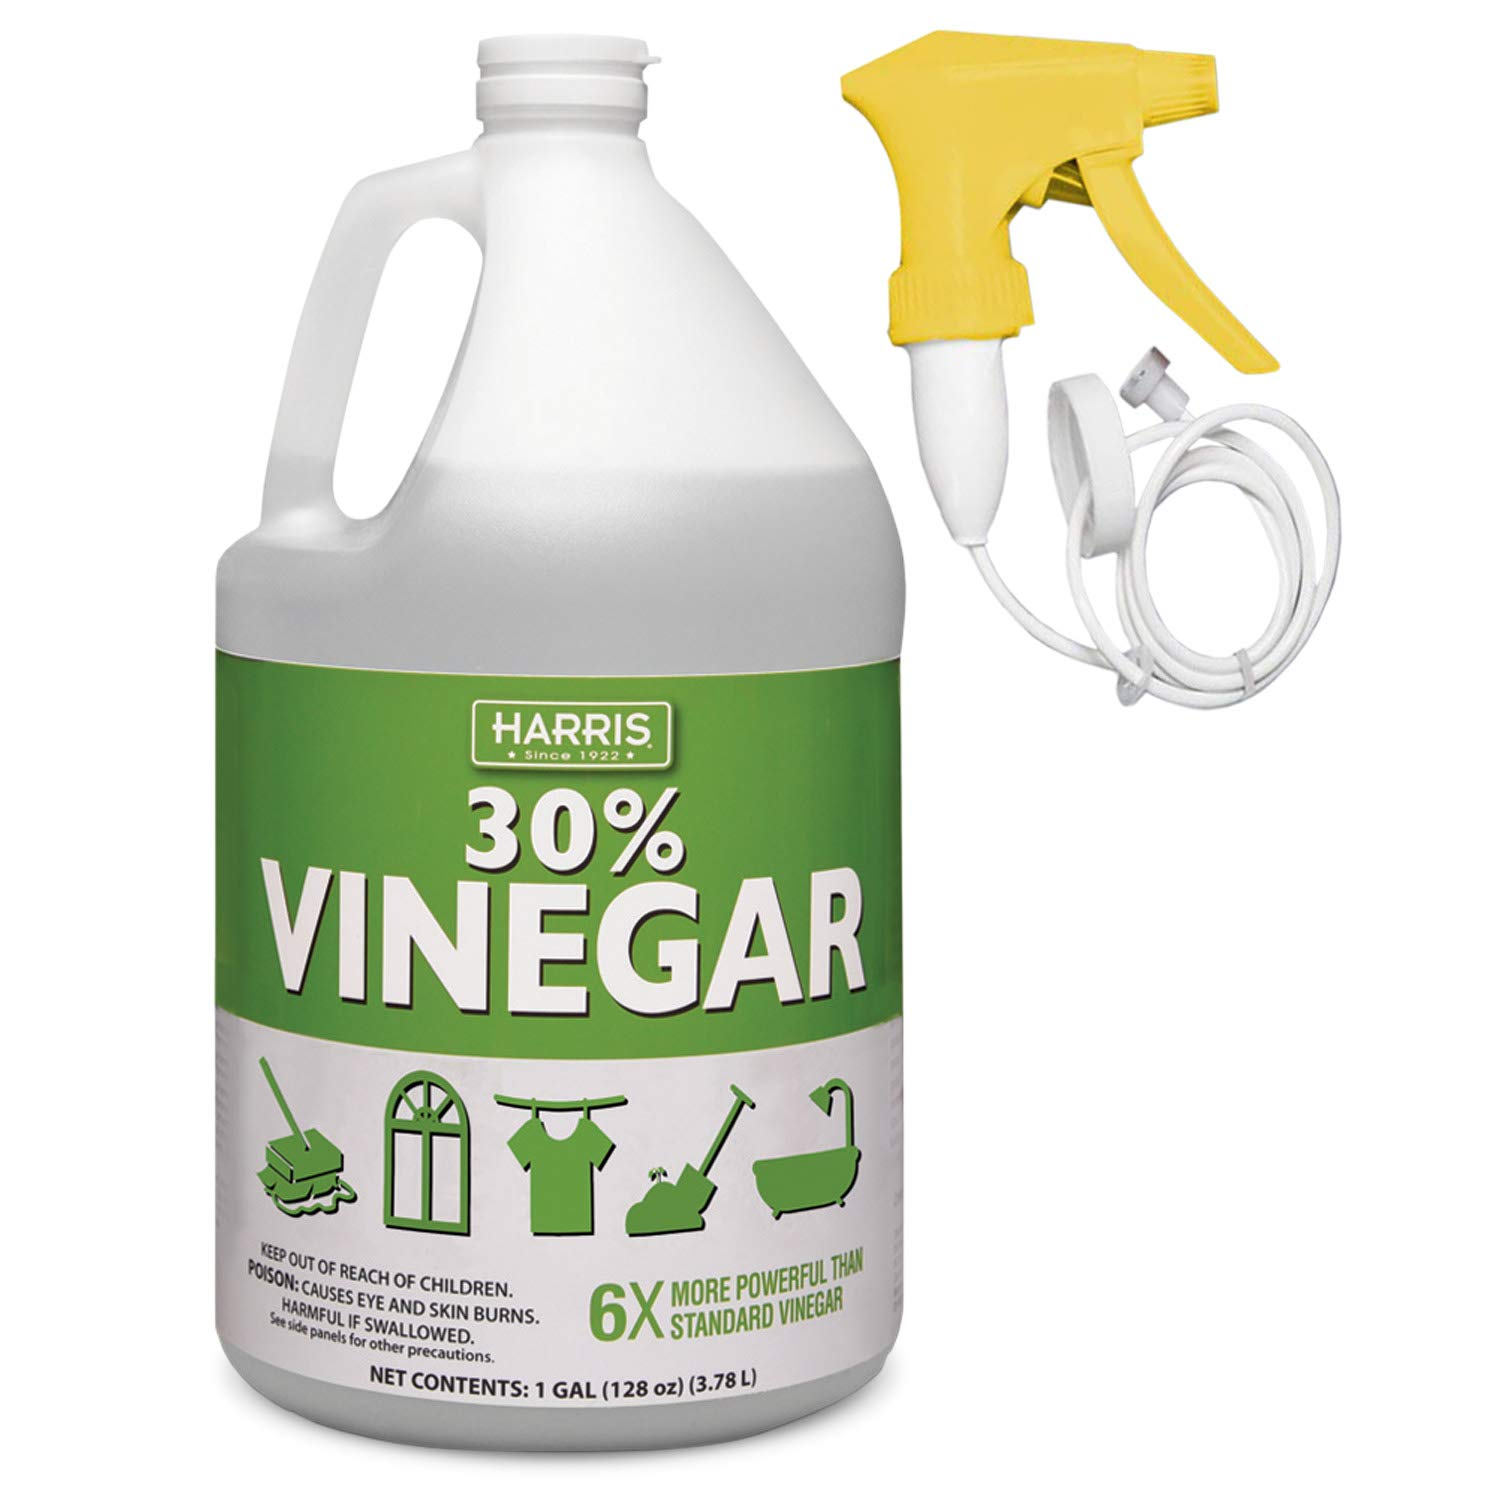 30 Pure Vinegar, Extra Strength by Harris with Trigger Sprayer Included Gallon